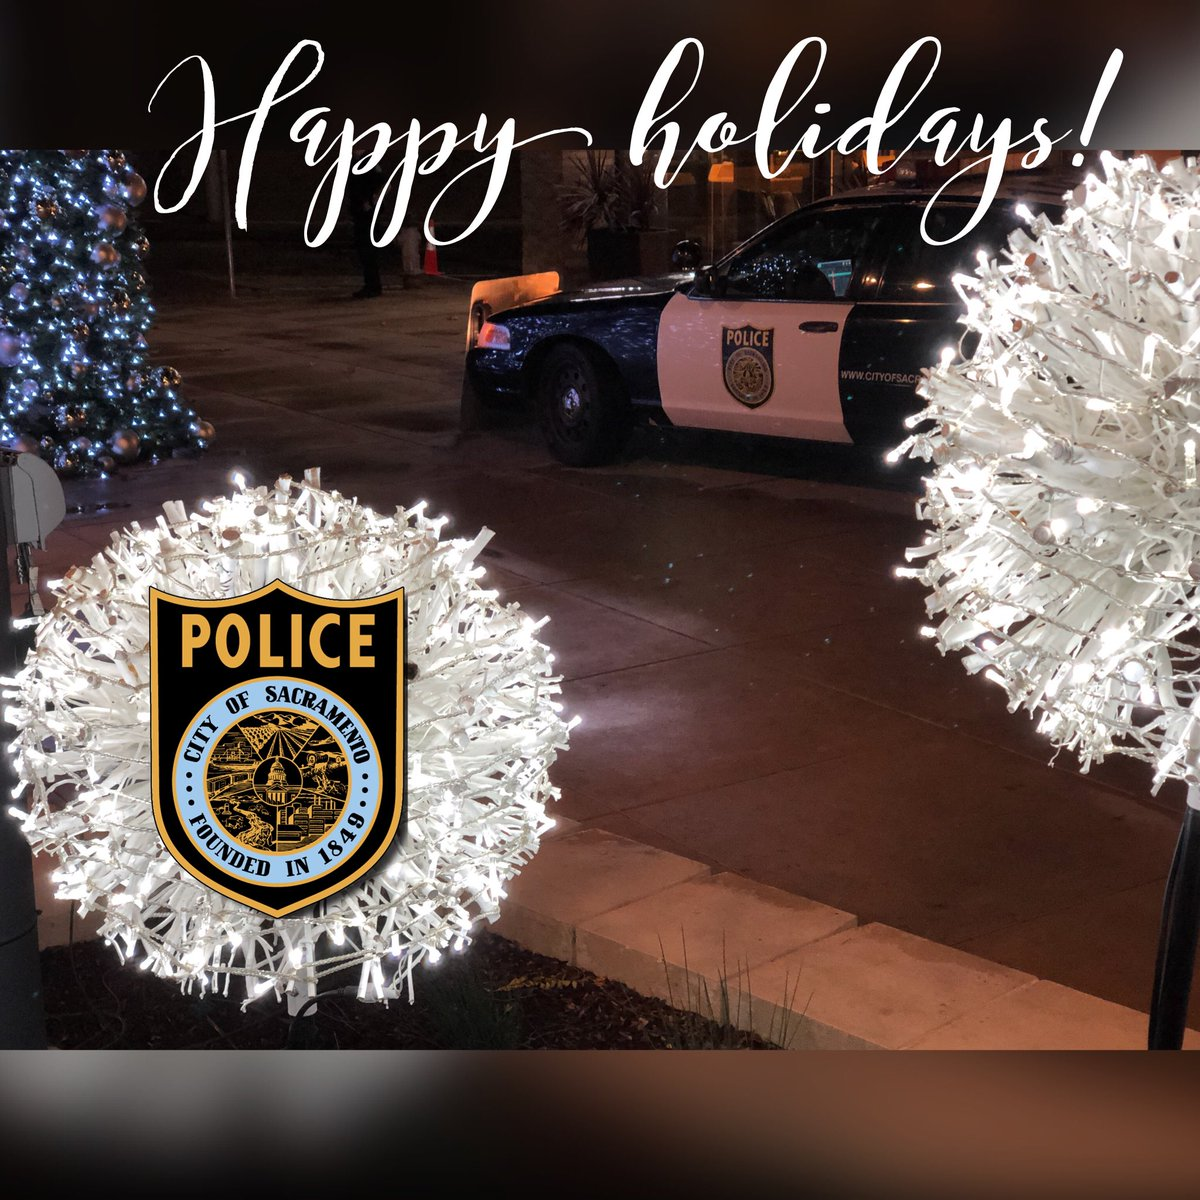 Merry Christmasto all & thank you to all those who are serving us today, in every profession, everywhere - we appreciate you! #Holidays2017 #christmas2017 #sacpd<br>http://pic.twitter.com/luSnGpBECL